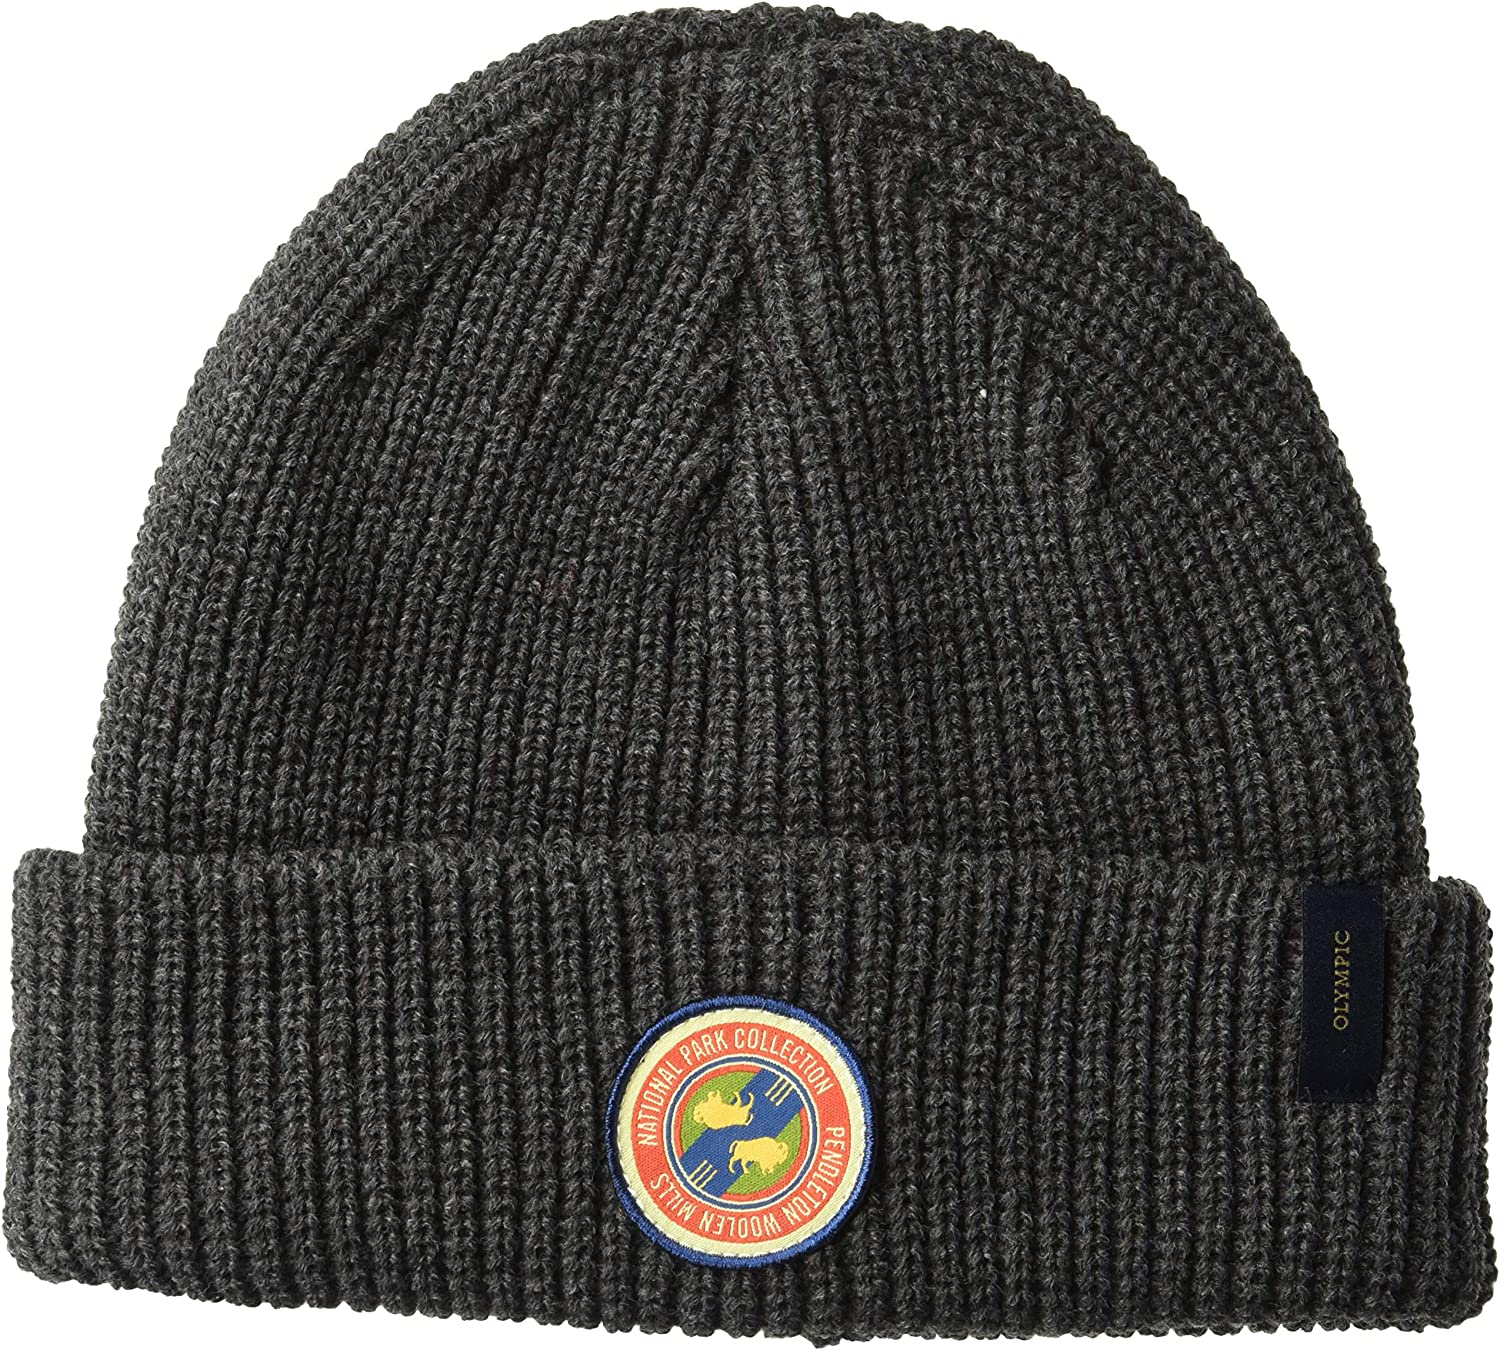 Caps Perfect for Snowboarding Mens Knitting Beanie Acadia-National-Park-Maine